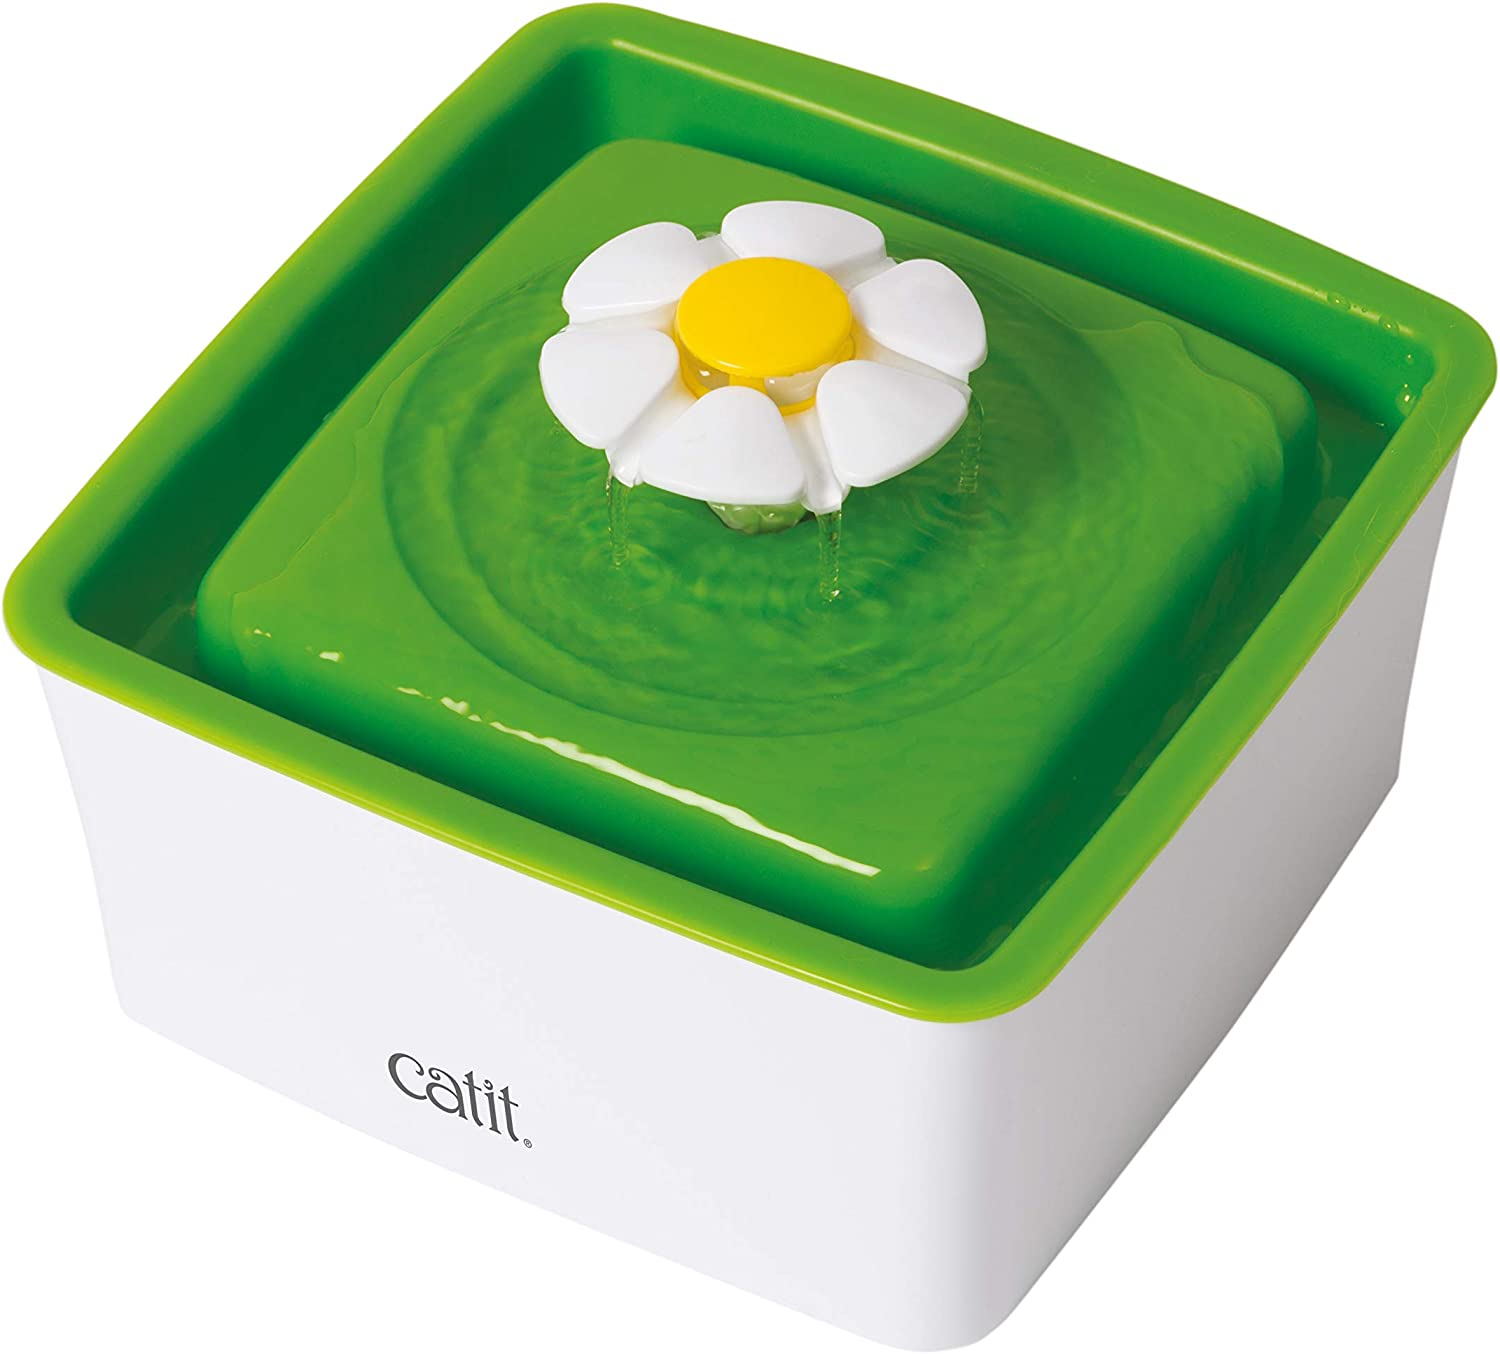 National products Catit Mini Filter Fountain Inexpensive